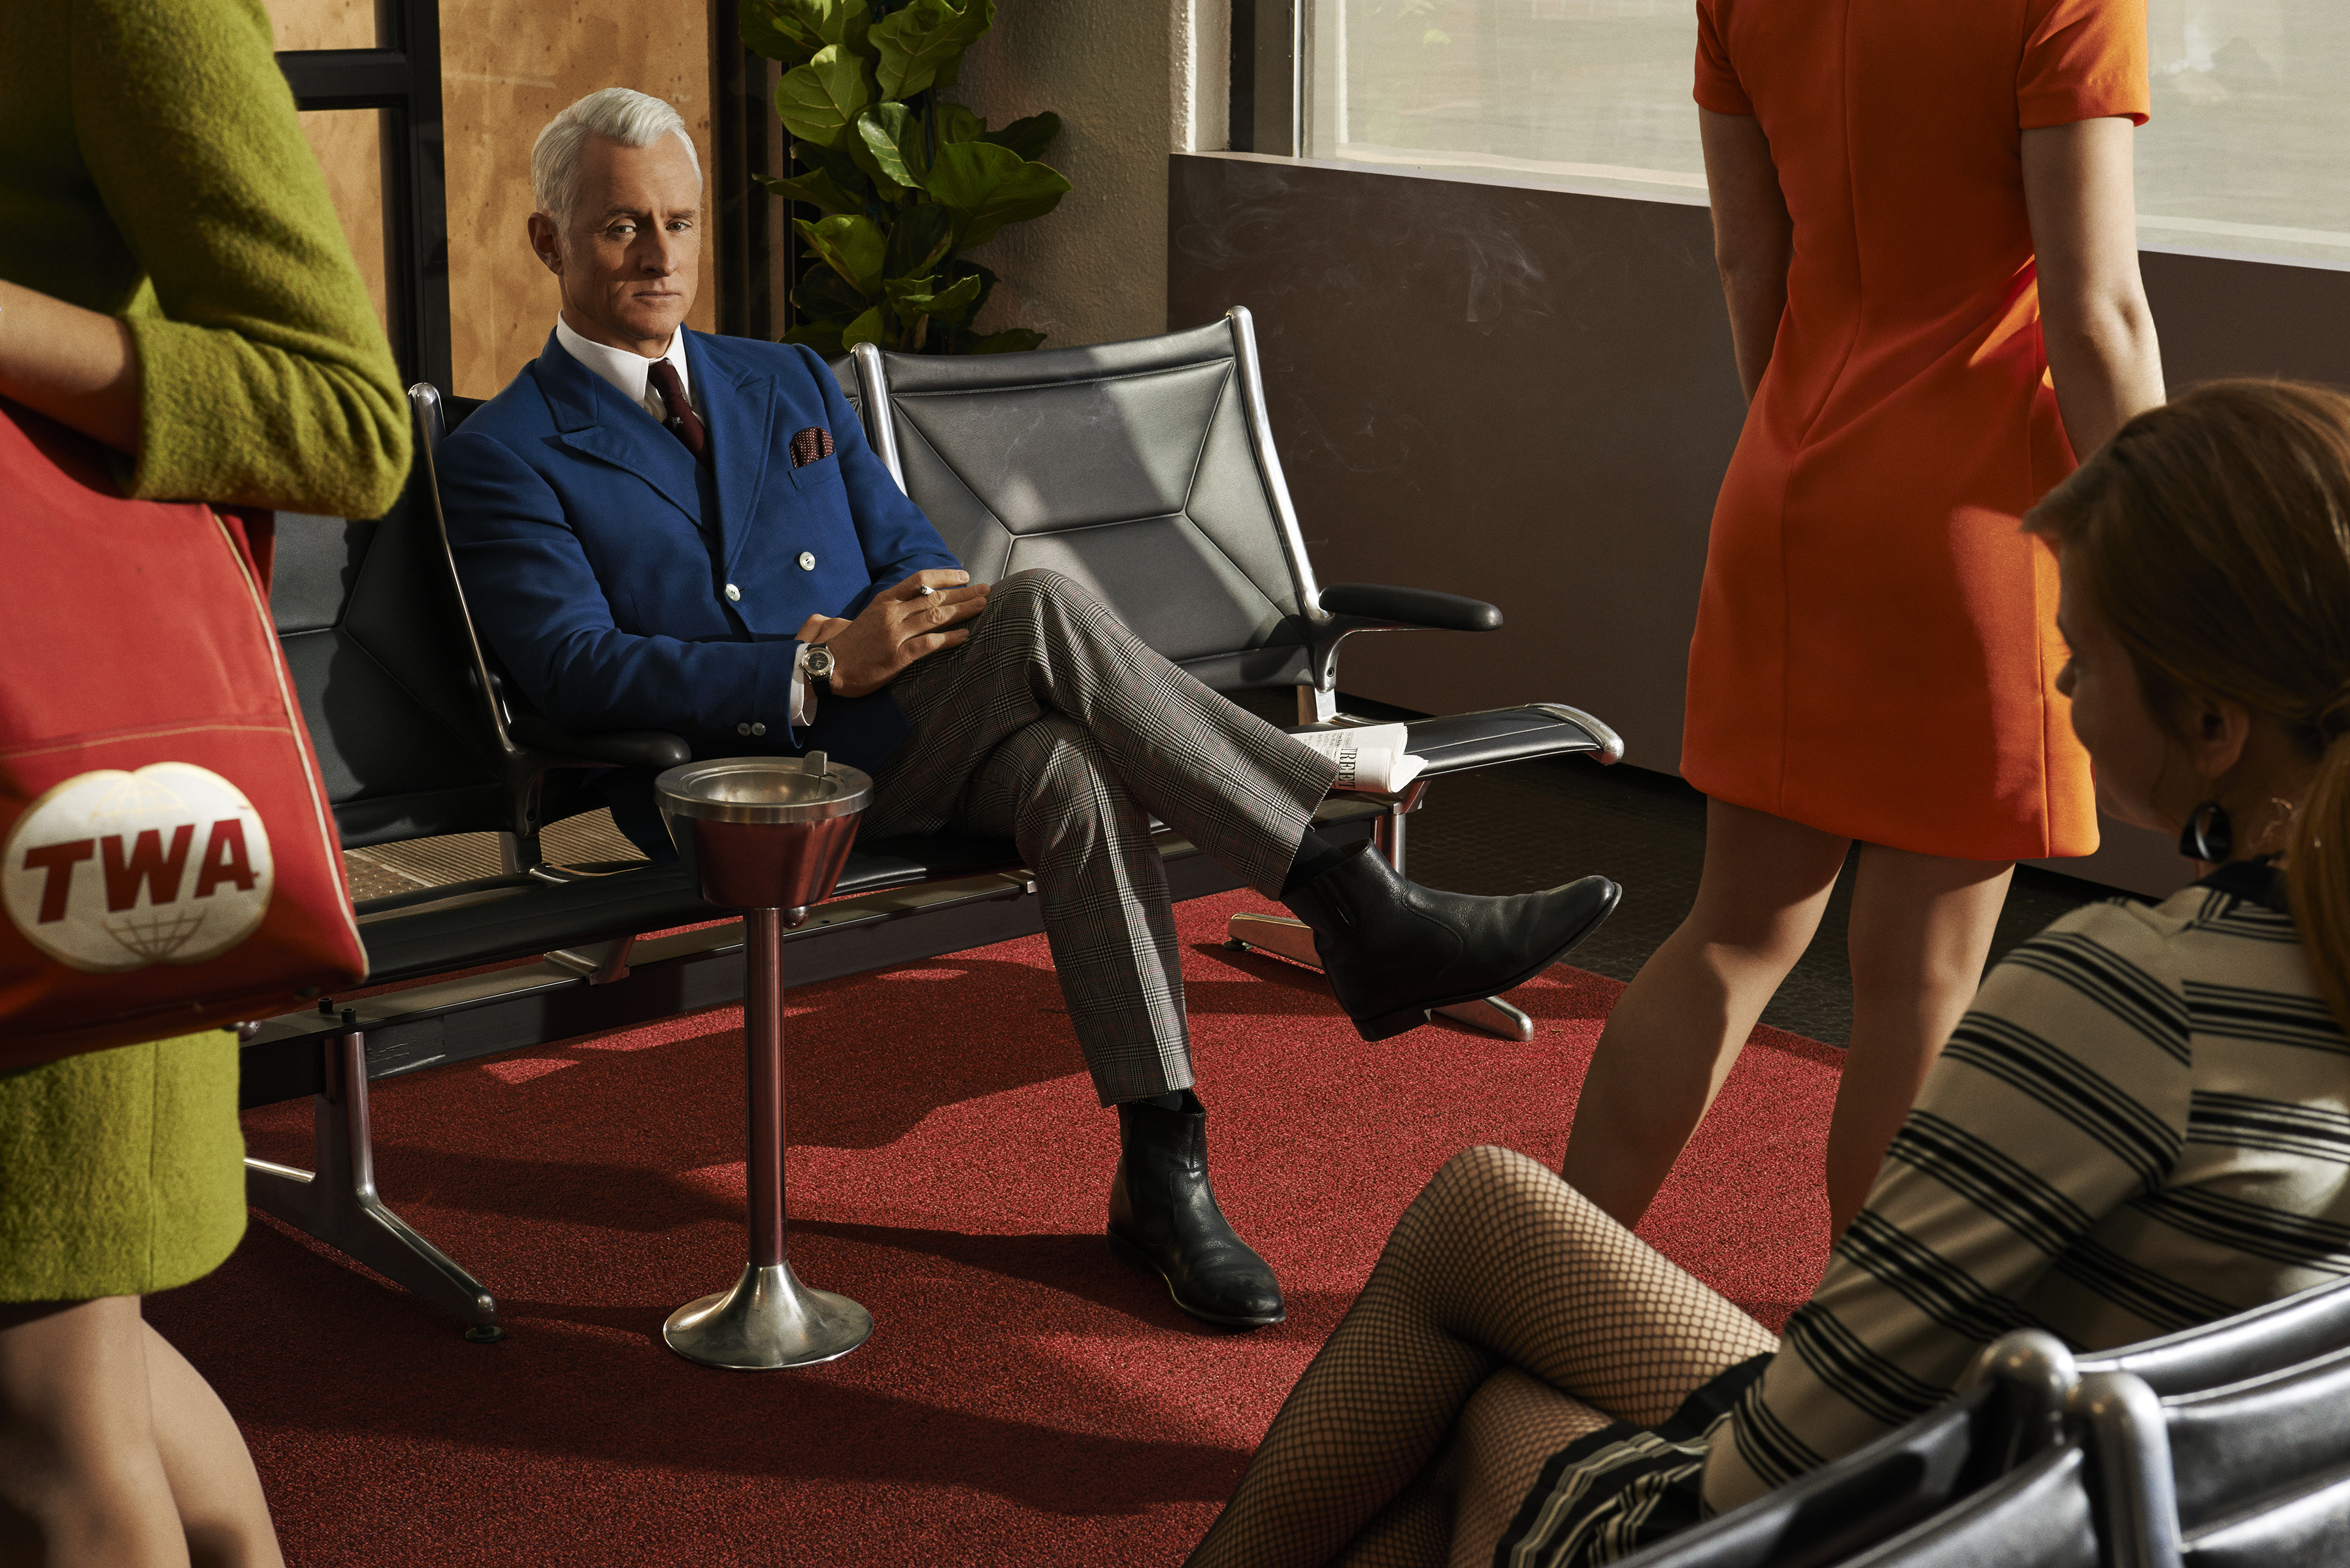 Mad-Men-Season-7-John-Slattery-as-Roger-Sterling